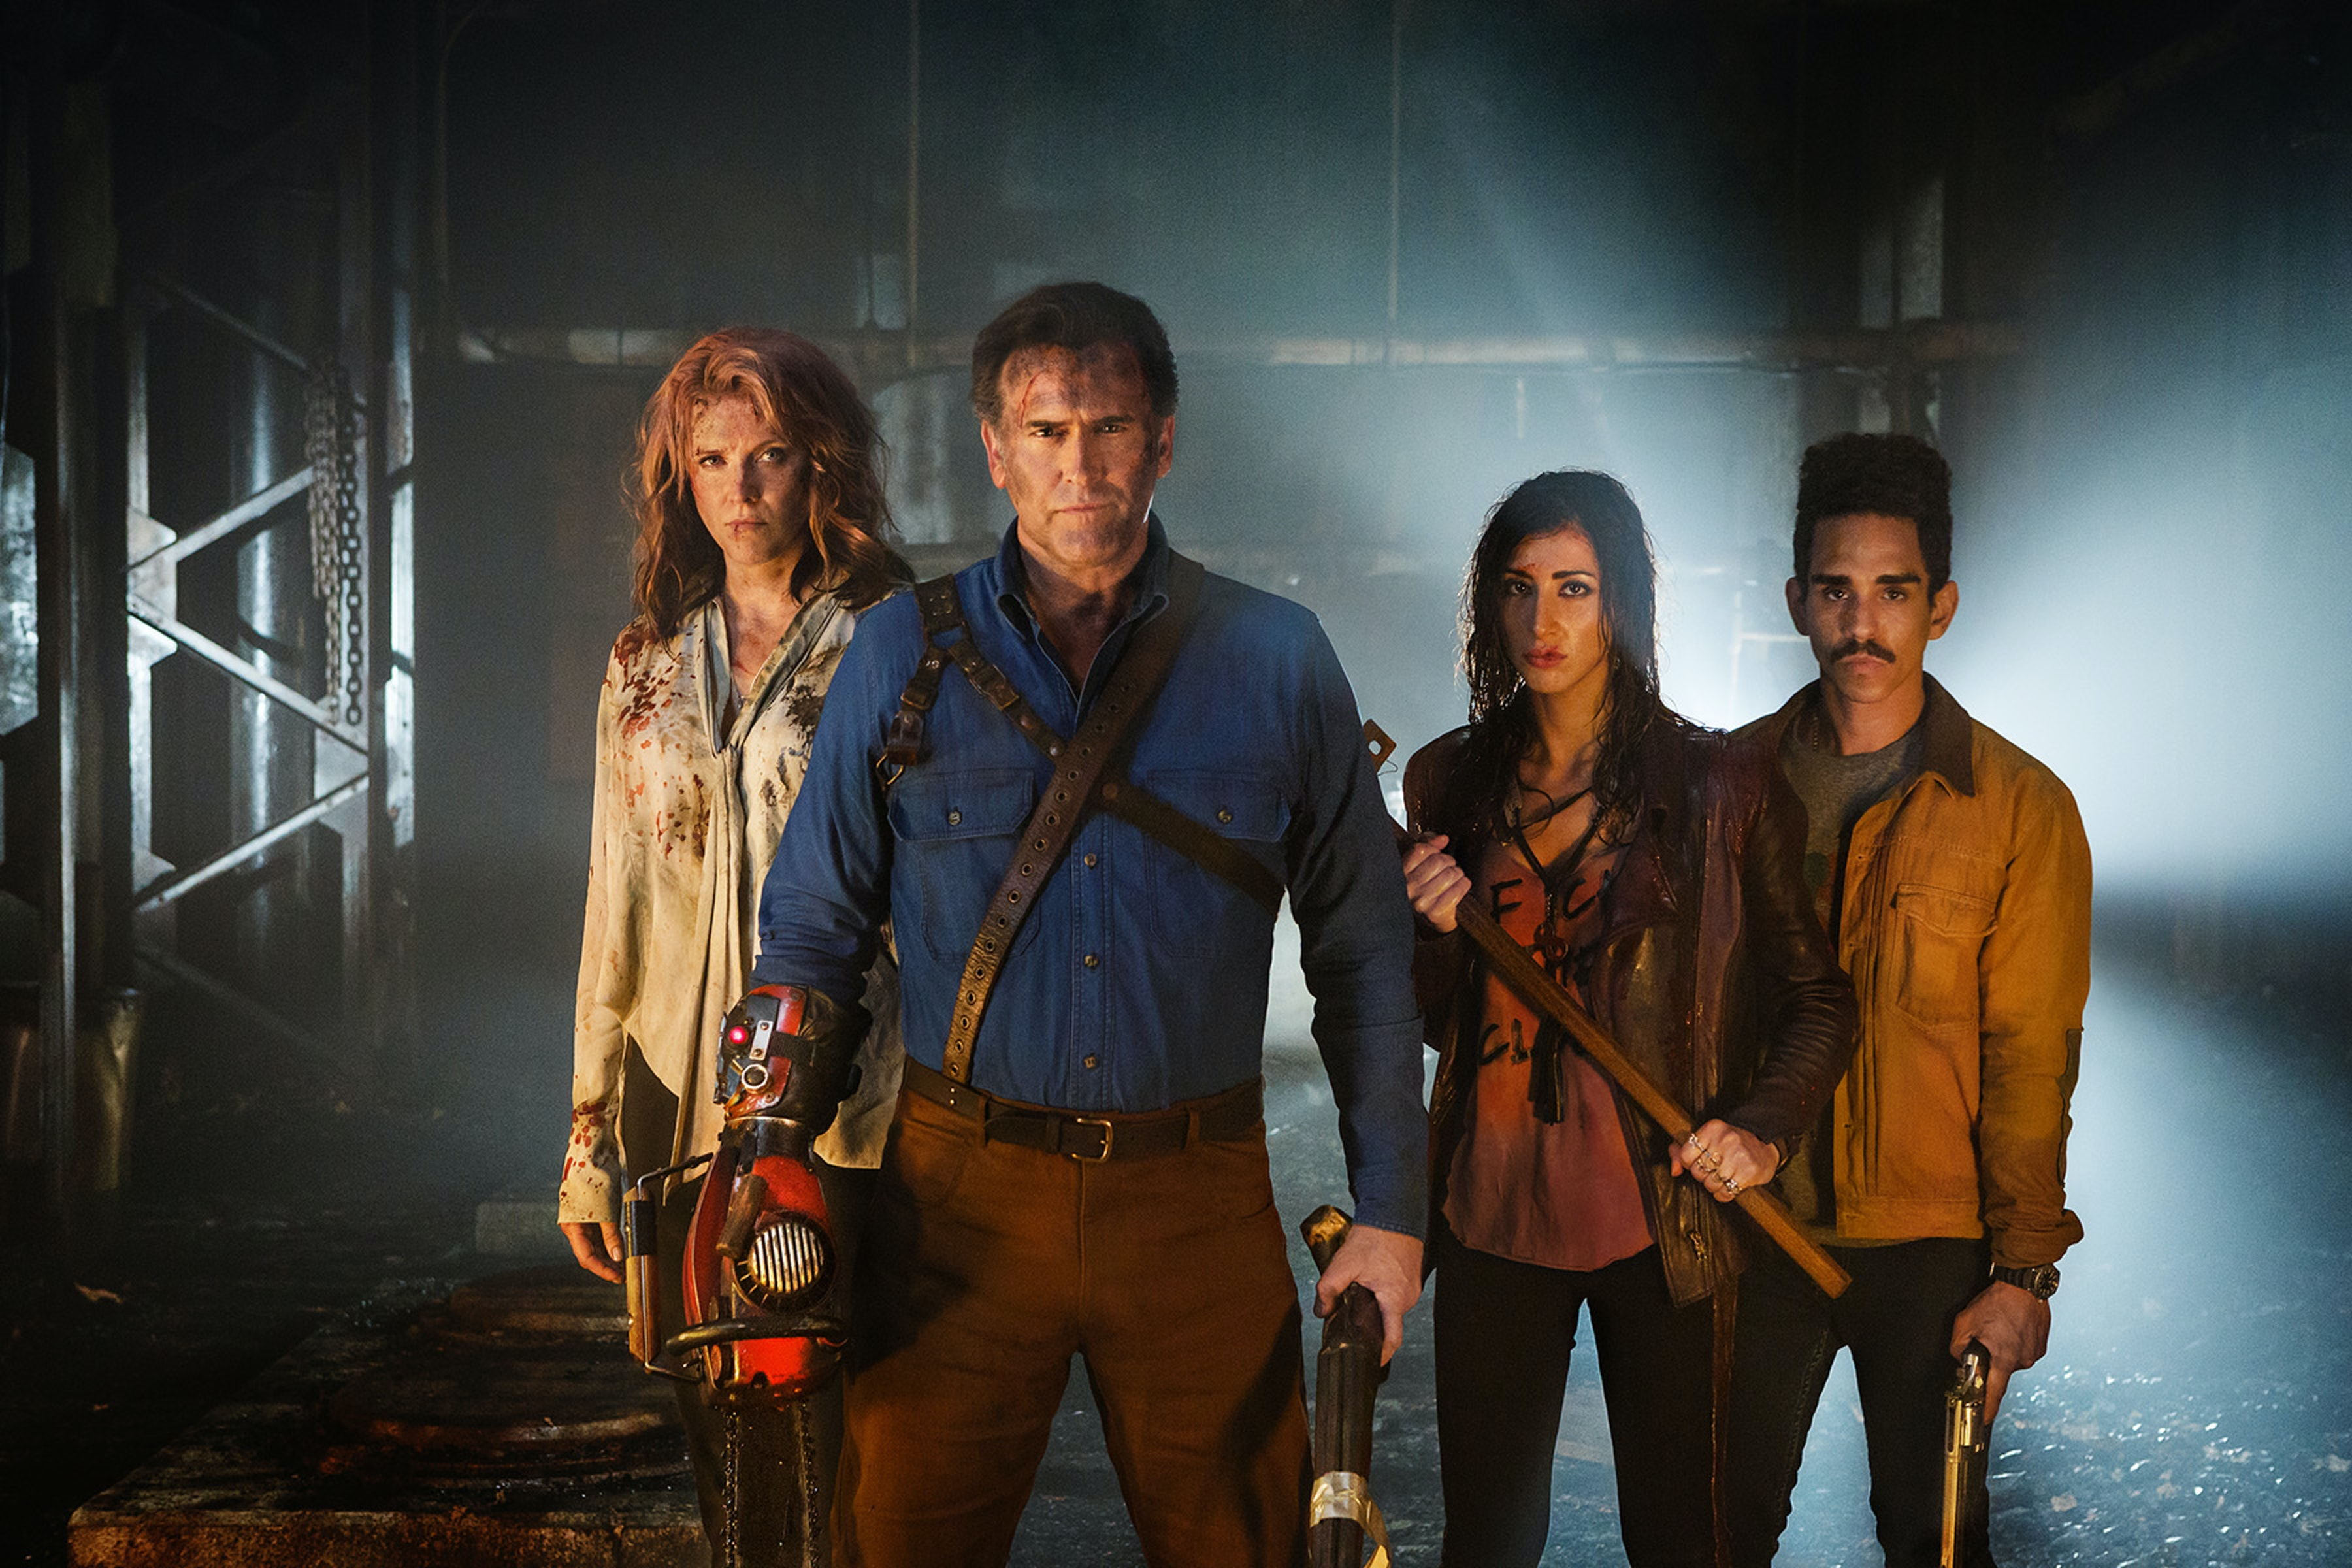 Lucy Lawless, Bruce Campbell, Dana DeLorenzo, and Ray Santiago in 'Ash vs Evil Dead'